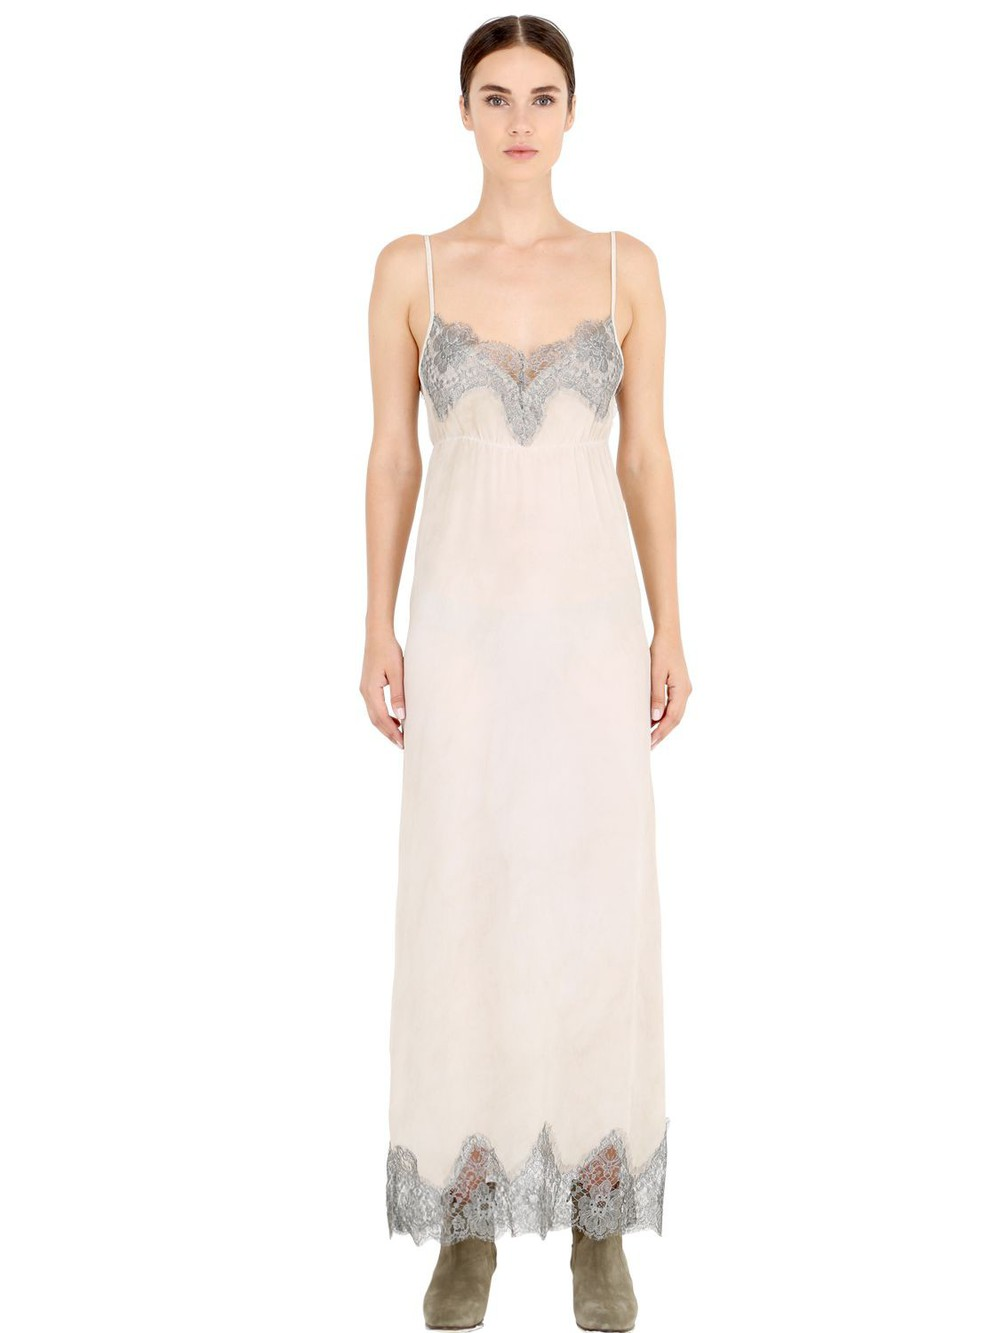 5a31b19cf39f PINK MEMORIES Marbled Silk Crepe Dress With Lace in beige / silver / beige